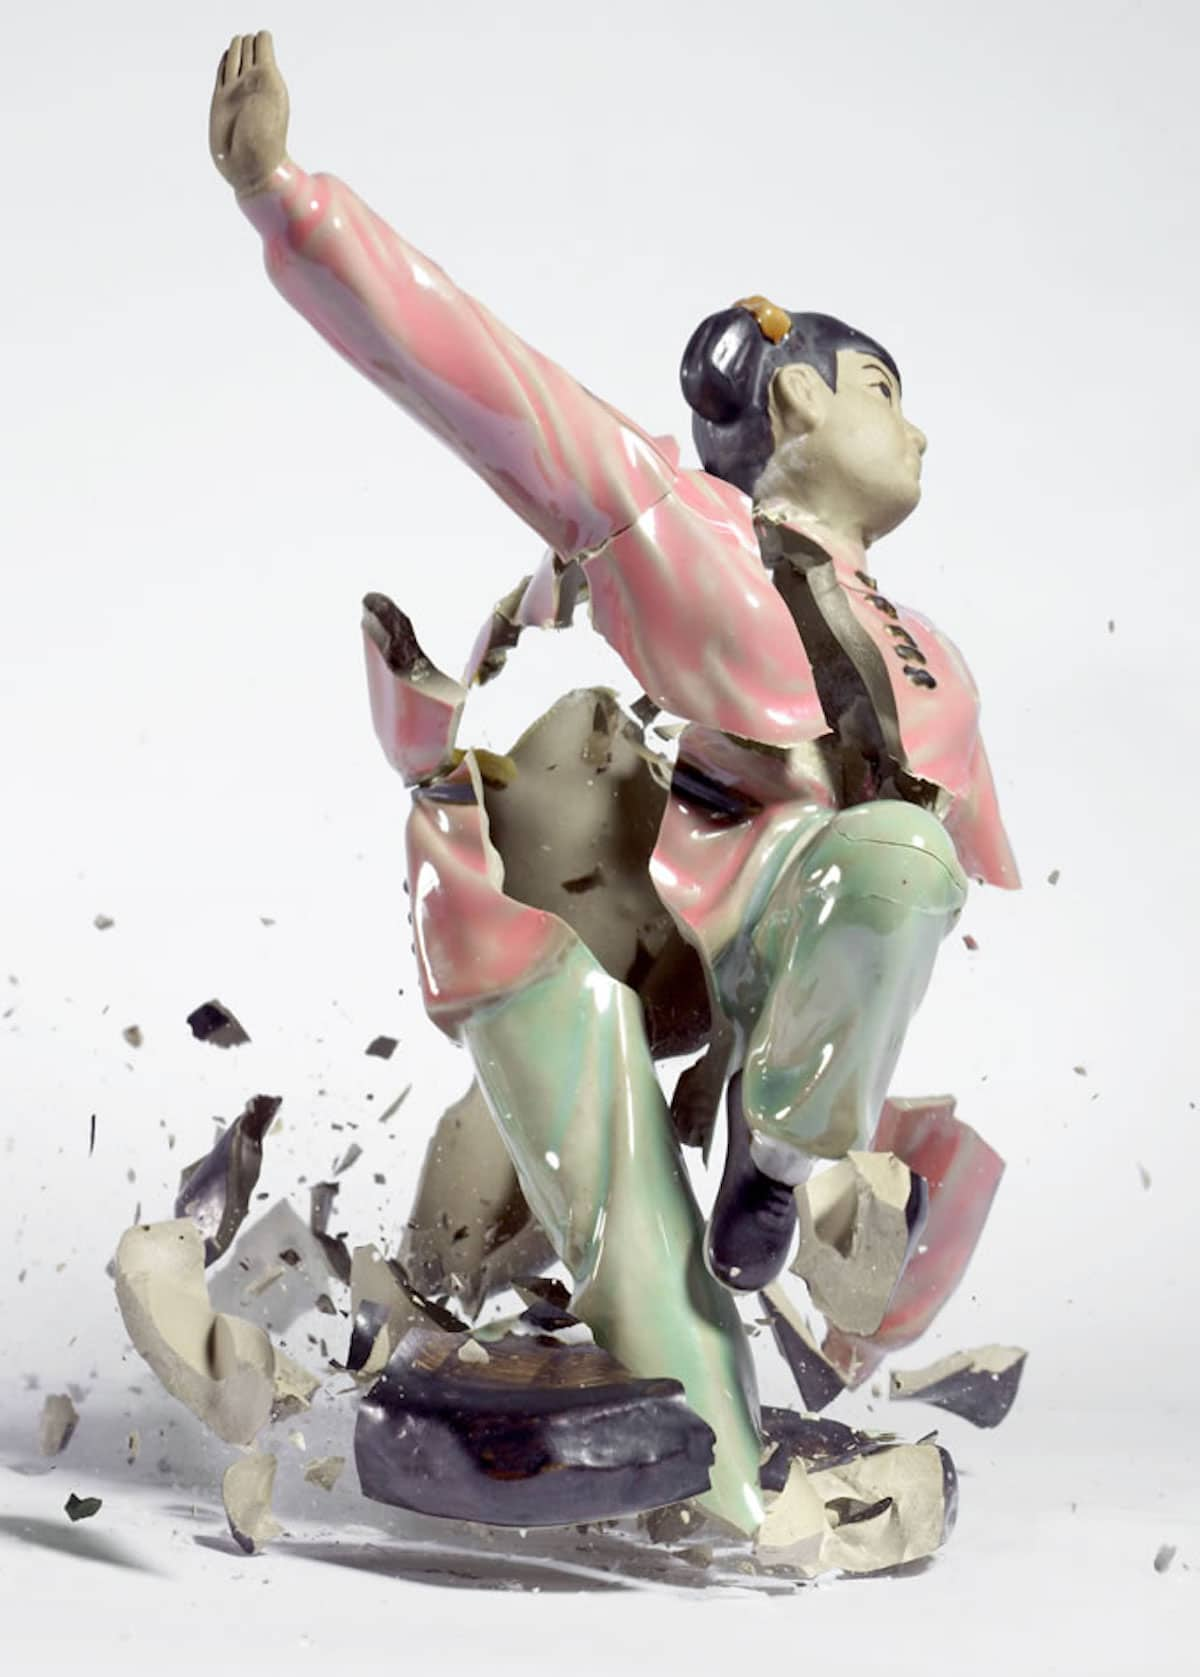 High Speed Photography of Shattered Porcelain Figurines by Martin Klimas